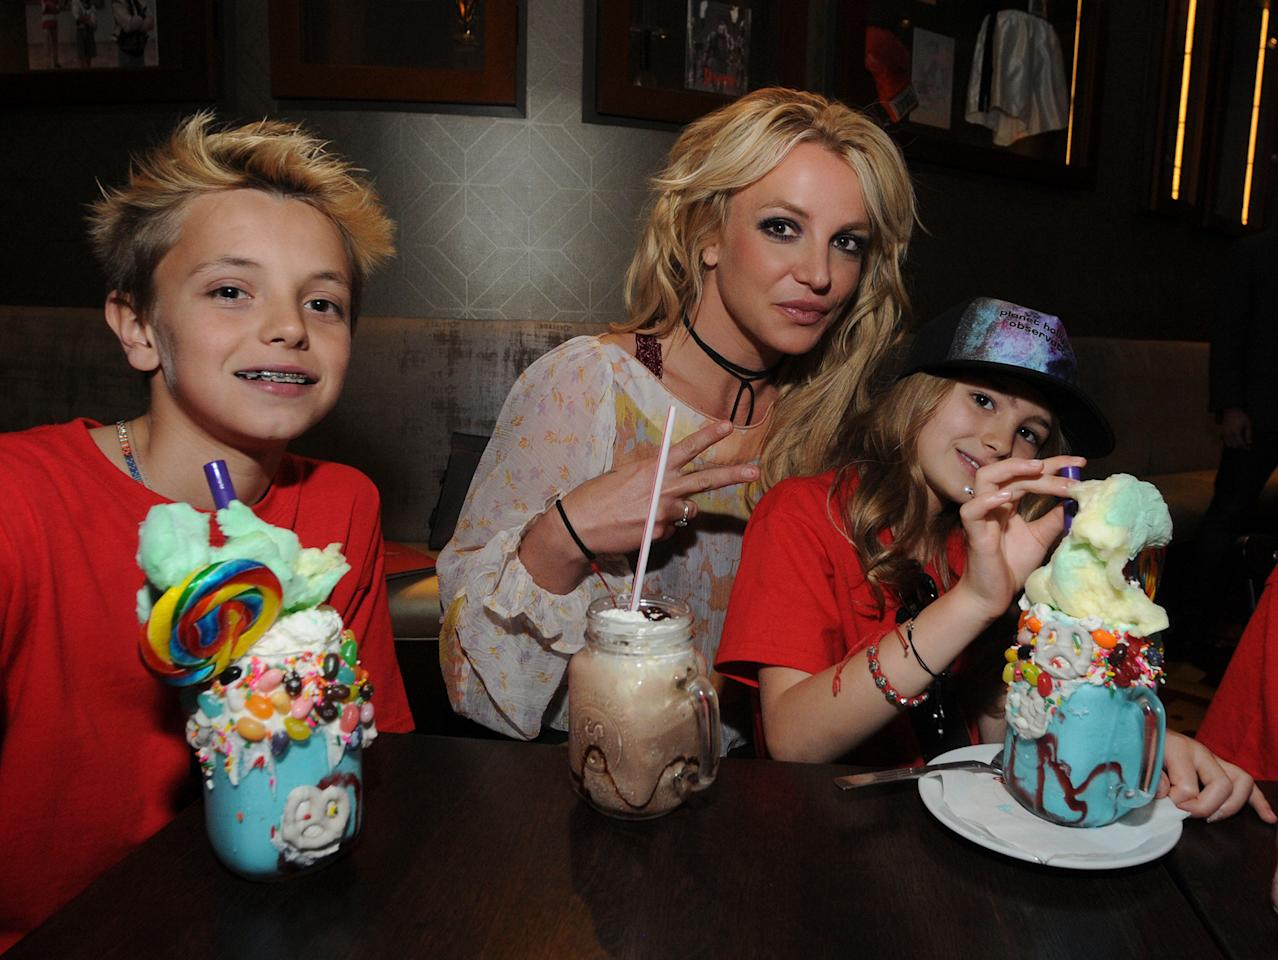 It's nothing but sweet stuff for Britney Spears on Monday as she enjoys some out-of-this-world treats with her son Jayden and niece Maddie at Orlando's Planet Hollywood.